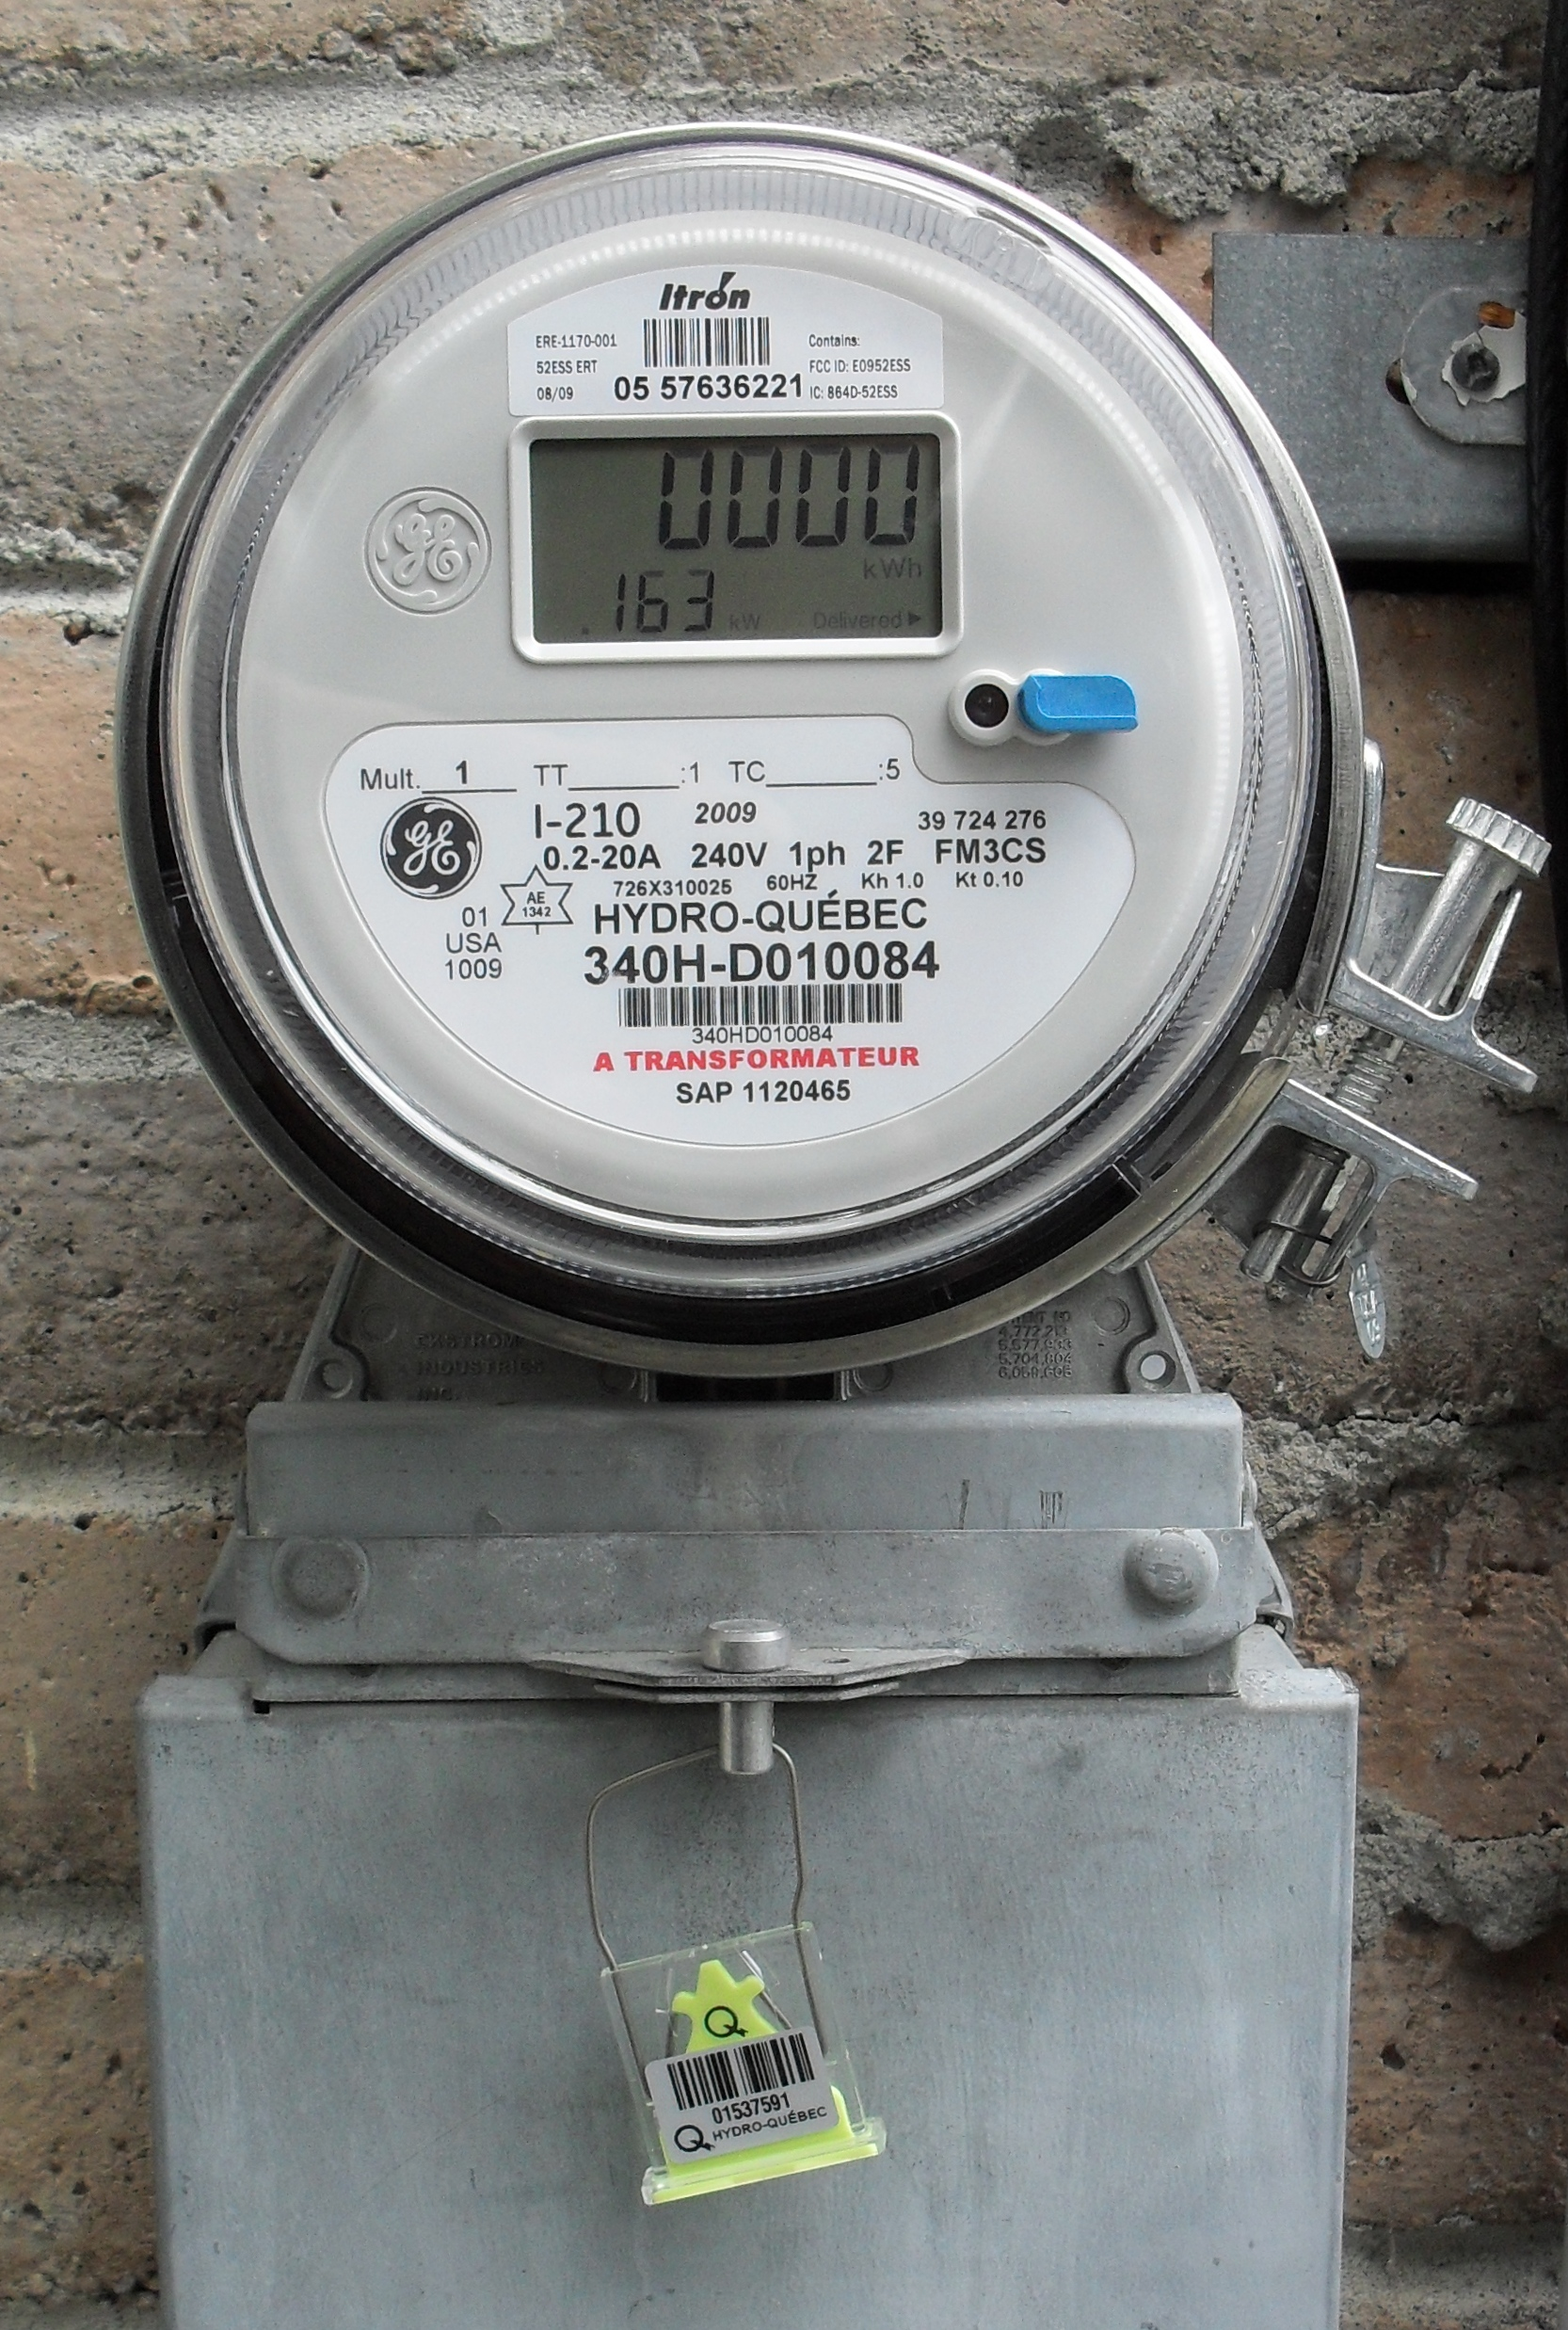 Electricity Meter Wikipedia Wiring Diagram Usefulldatacom Ammeter Schematic And North American Domestic Electronic